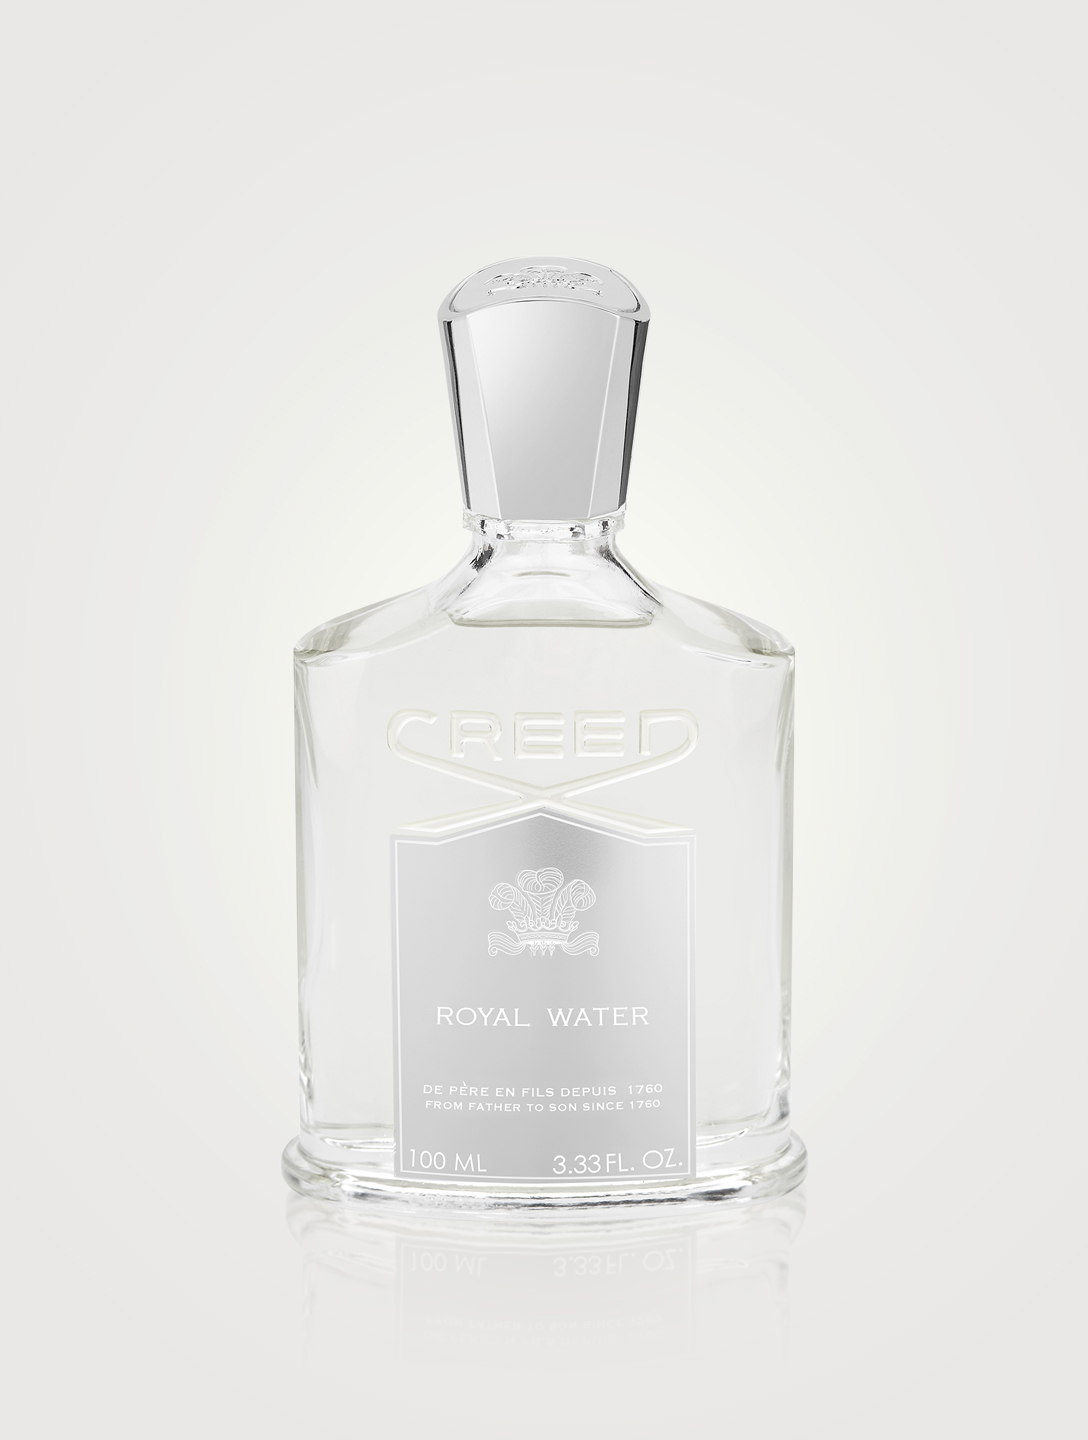 Royal Water Eau De Parfum Holt Renfrew Beauty 100 Creed